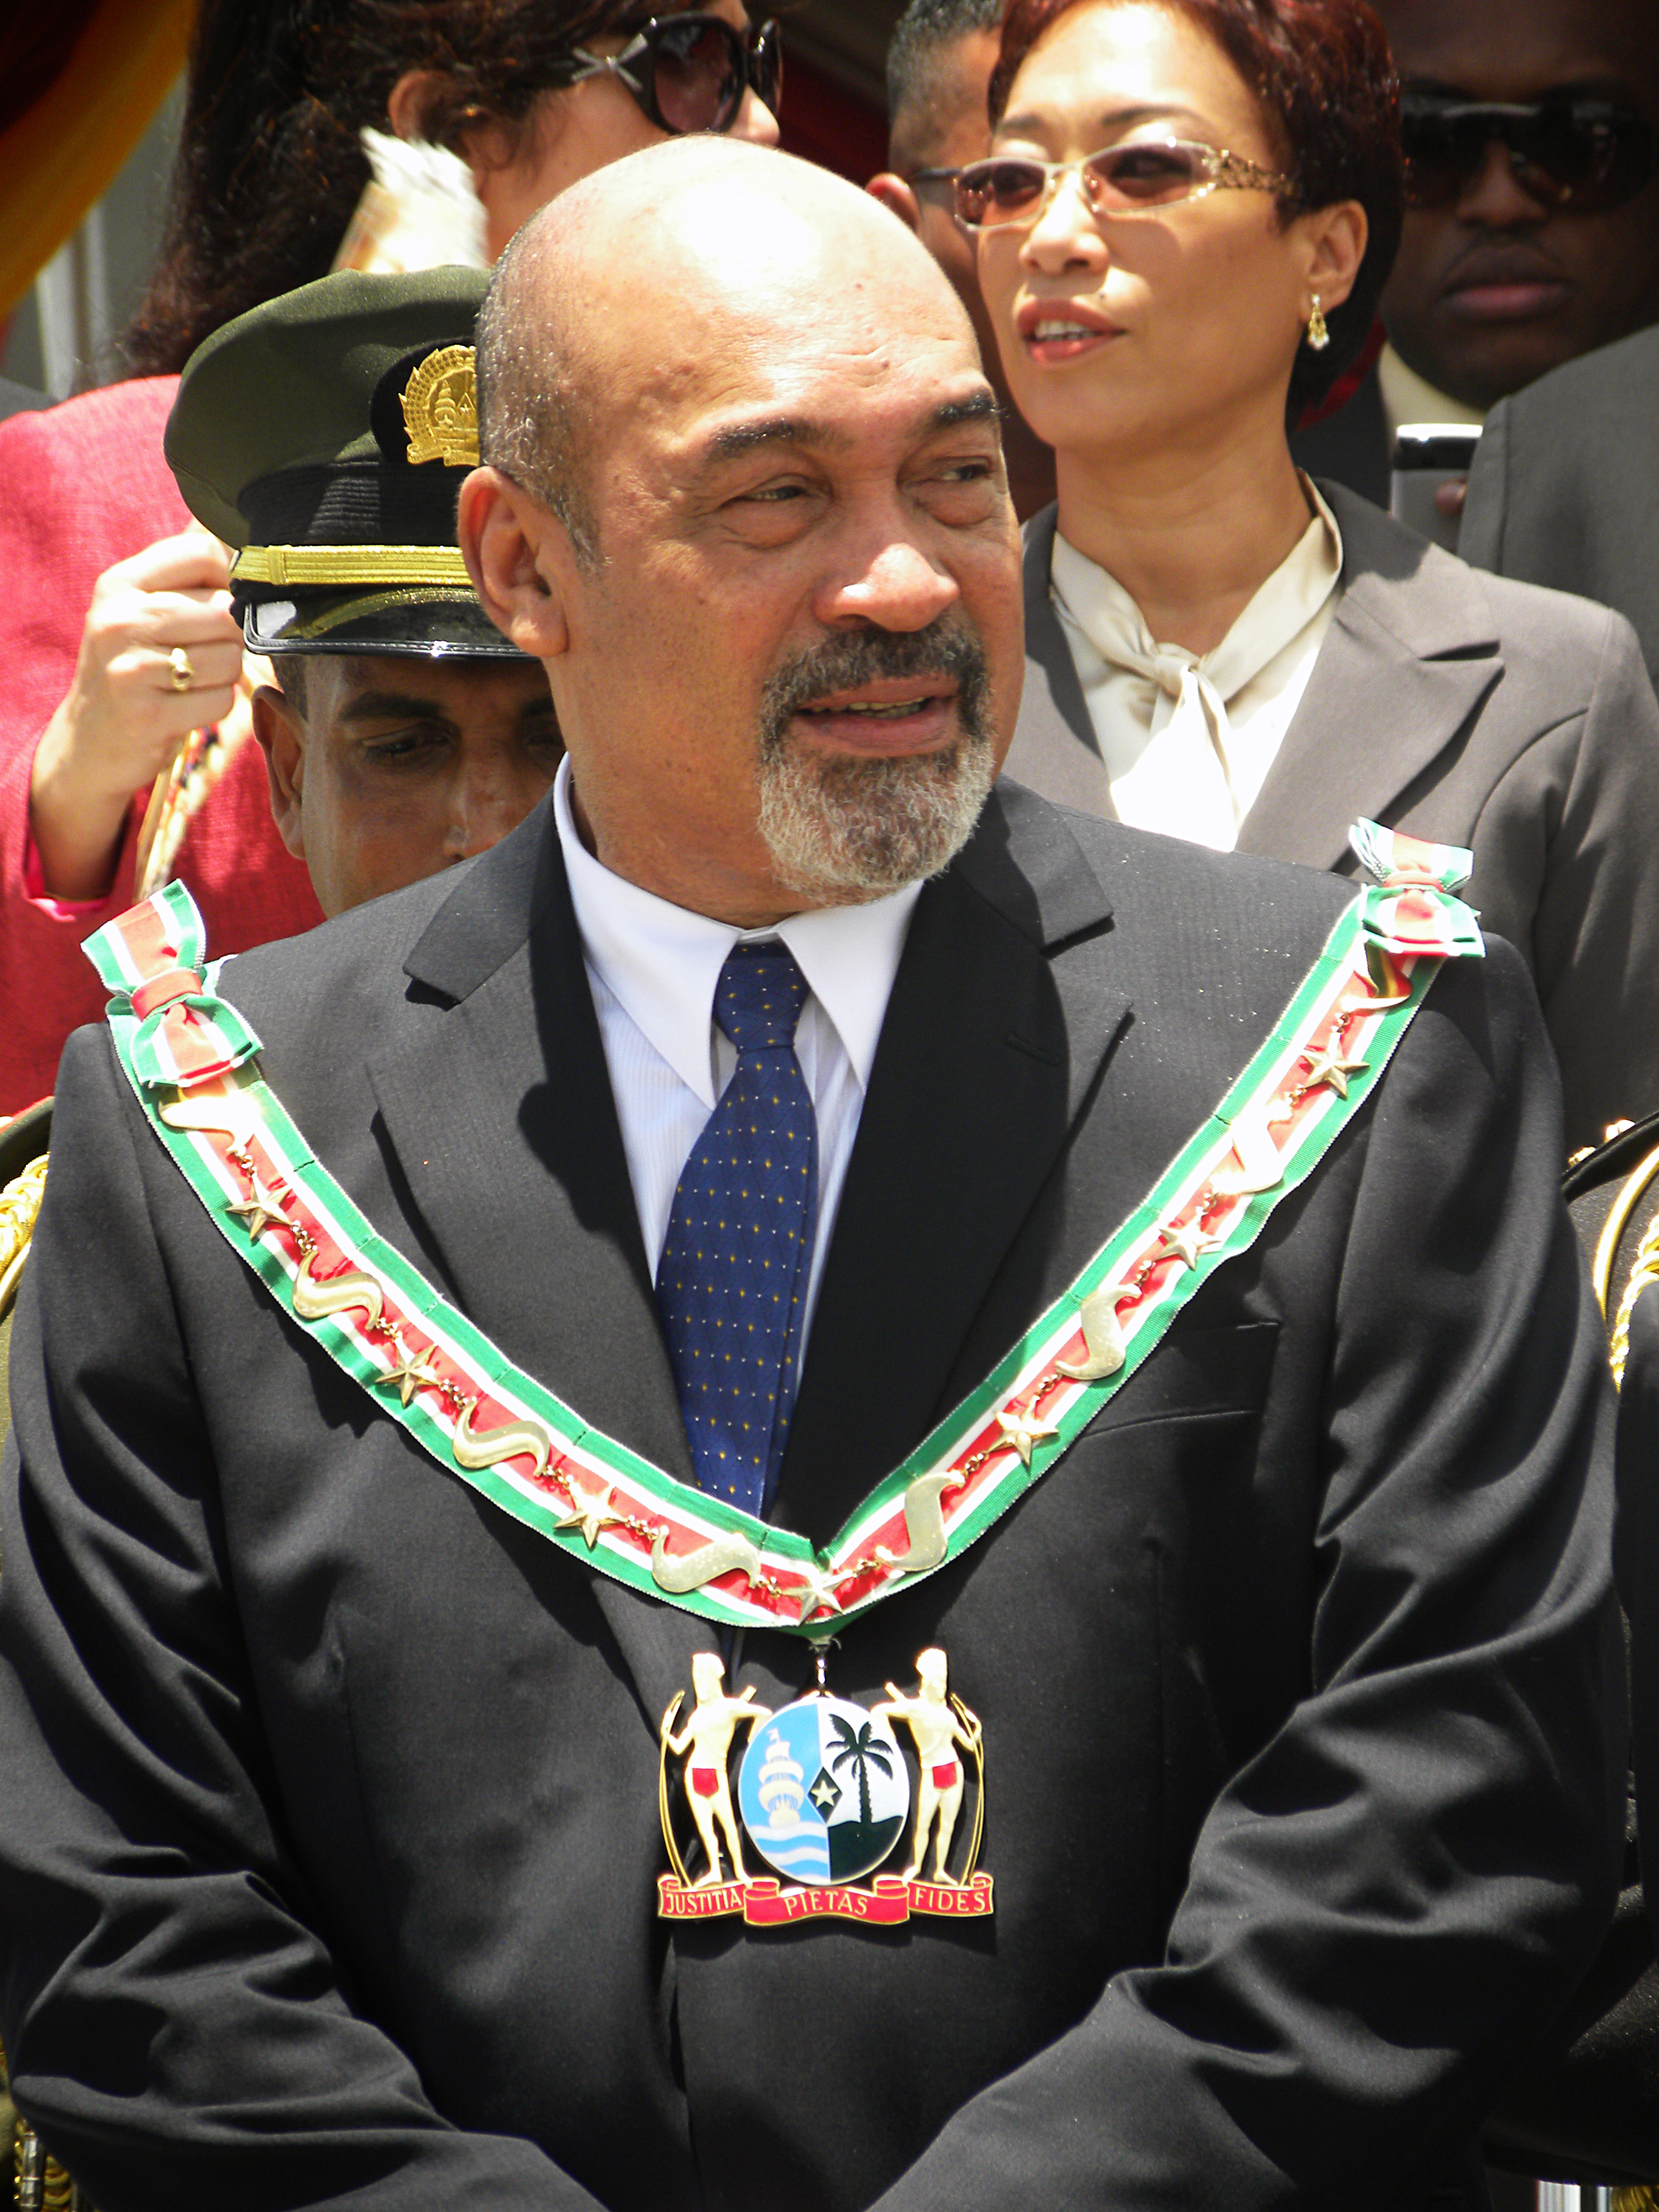 The 74-year old son of father (?) and mother(?) Desi Bouterse in 2020 photo. Desi Bouterse earned a million dollar salary - leaving the net worth at 6 million in 2020